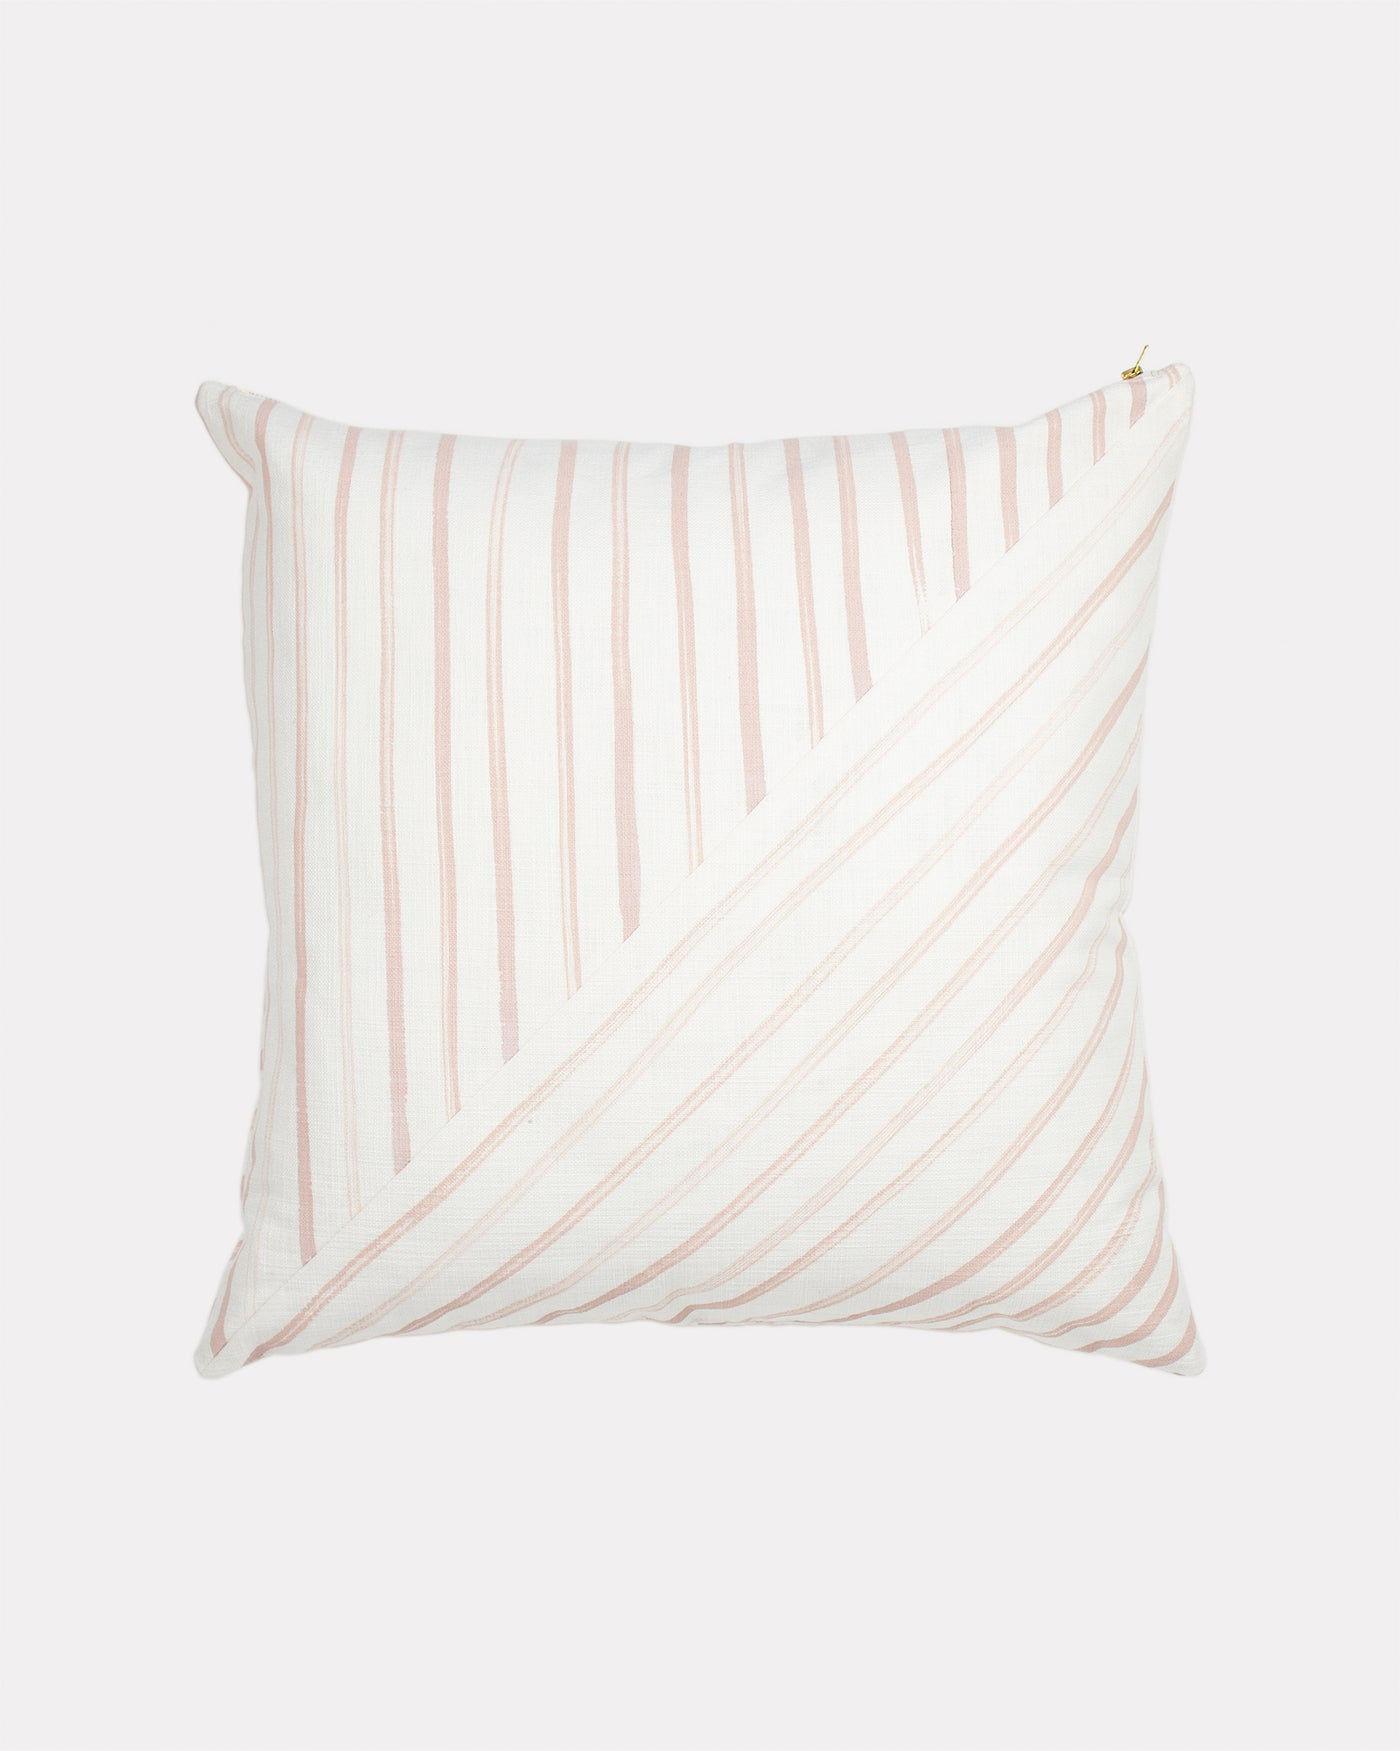 The Stripes Pillow Blush